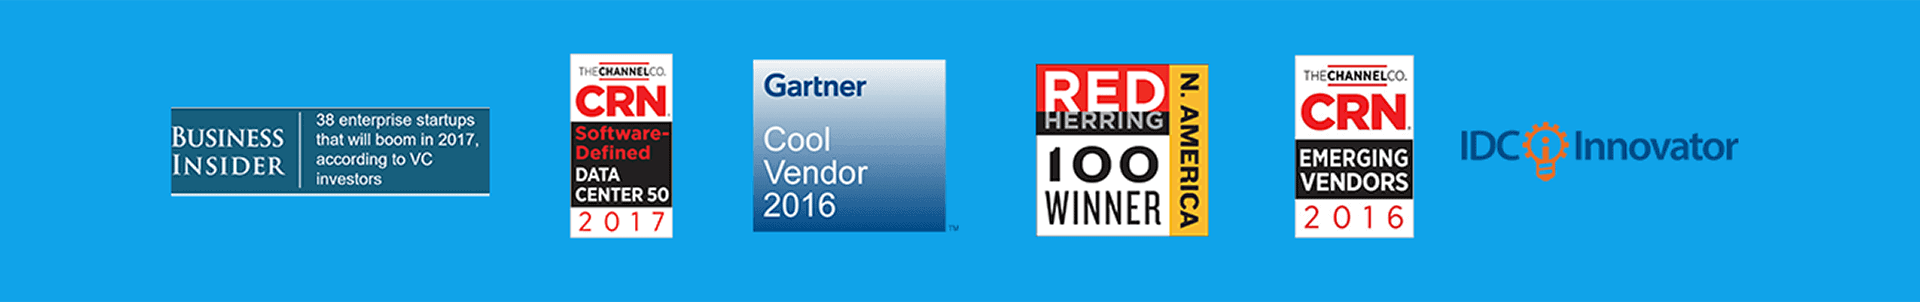 Avi Networks industry awards including Gartner Cool Vendor 2016, Red Herring 100 Winner, CRN Emerging Vendors of 2016, and IDC Innovator.